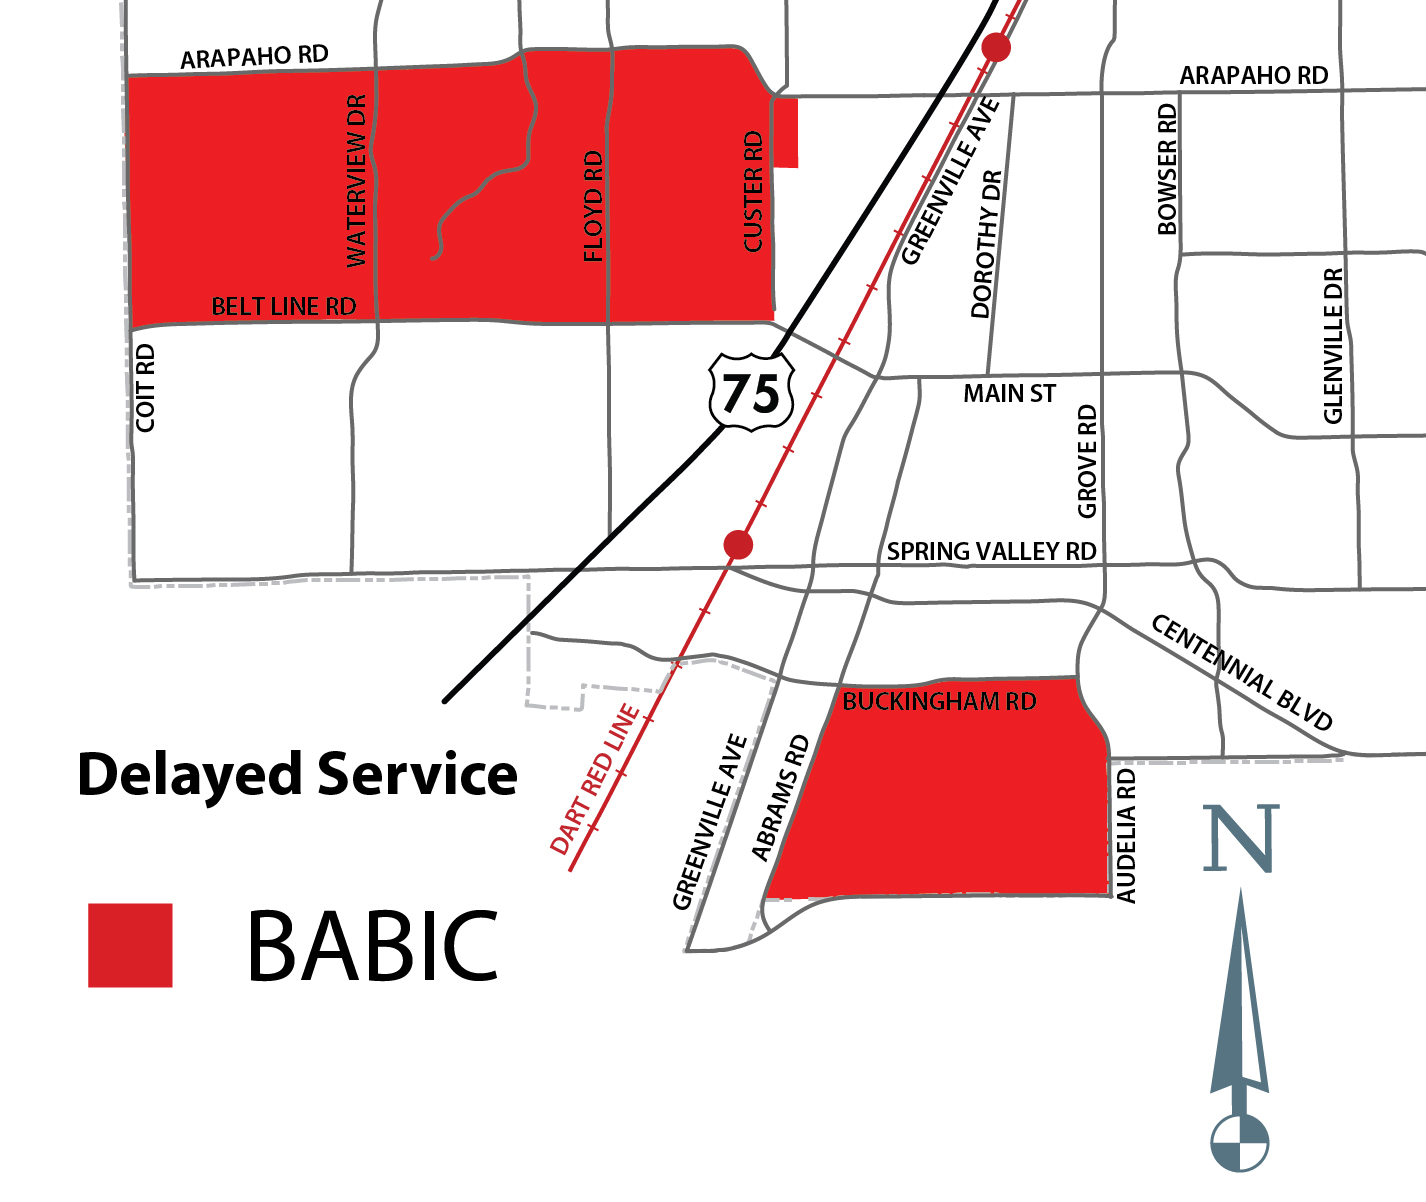 BABIC Recycling Delayed - September 9, 2019_cropped-01